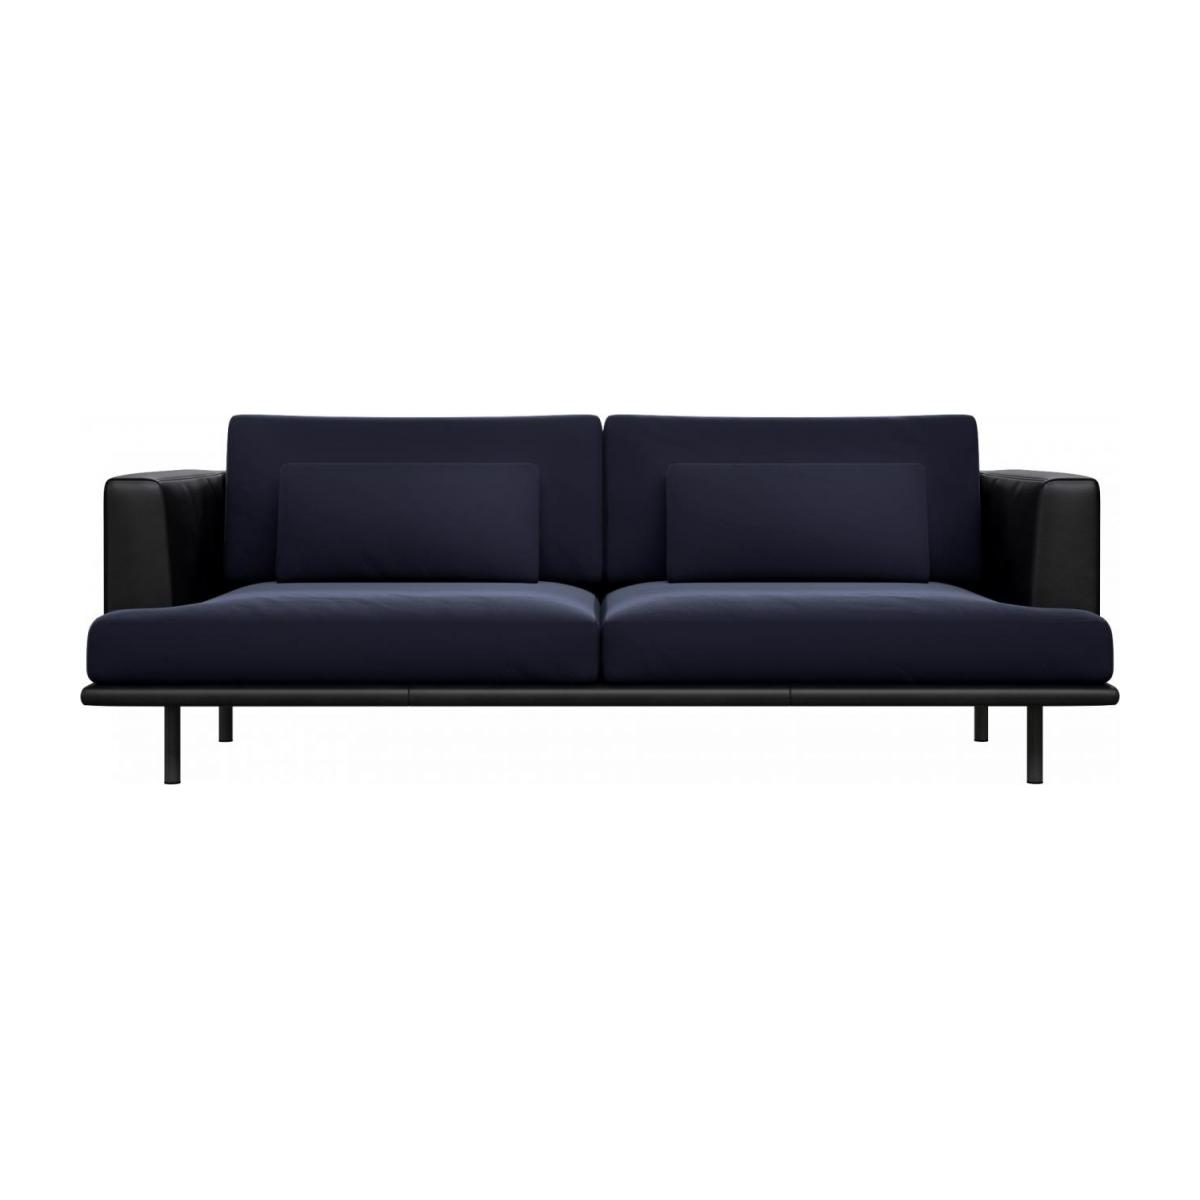 3 seater sofa in Super Velvet fabric, dark blue with base and armrests in black leather n°2